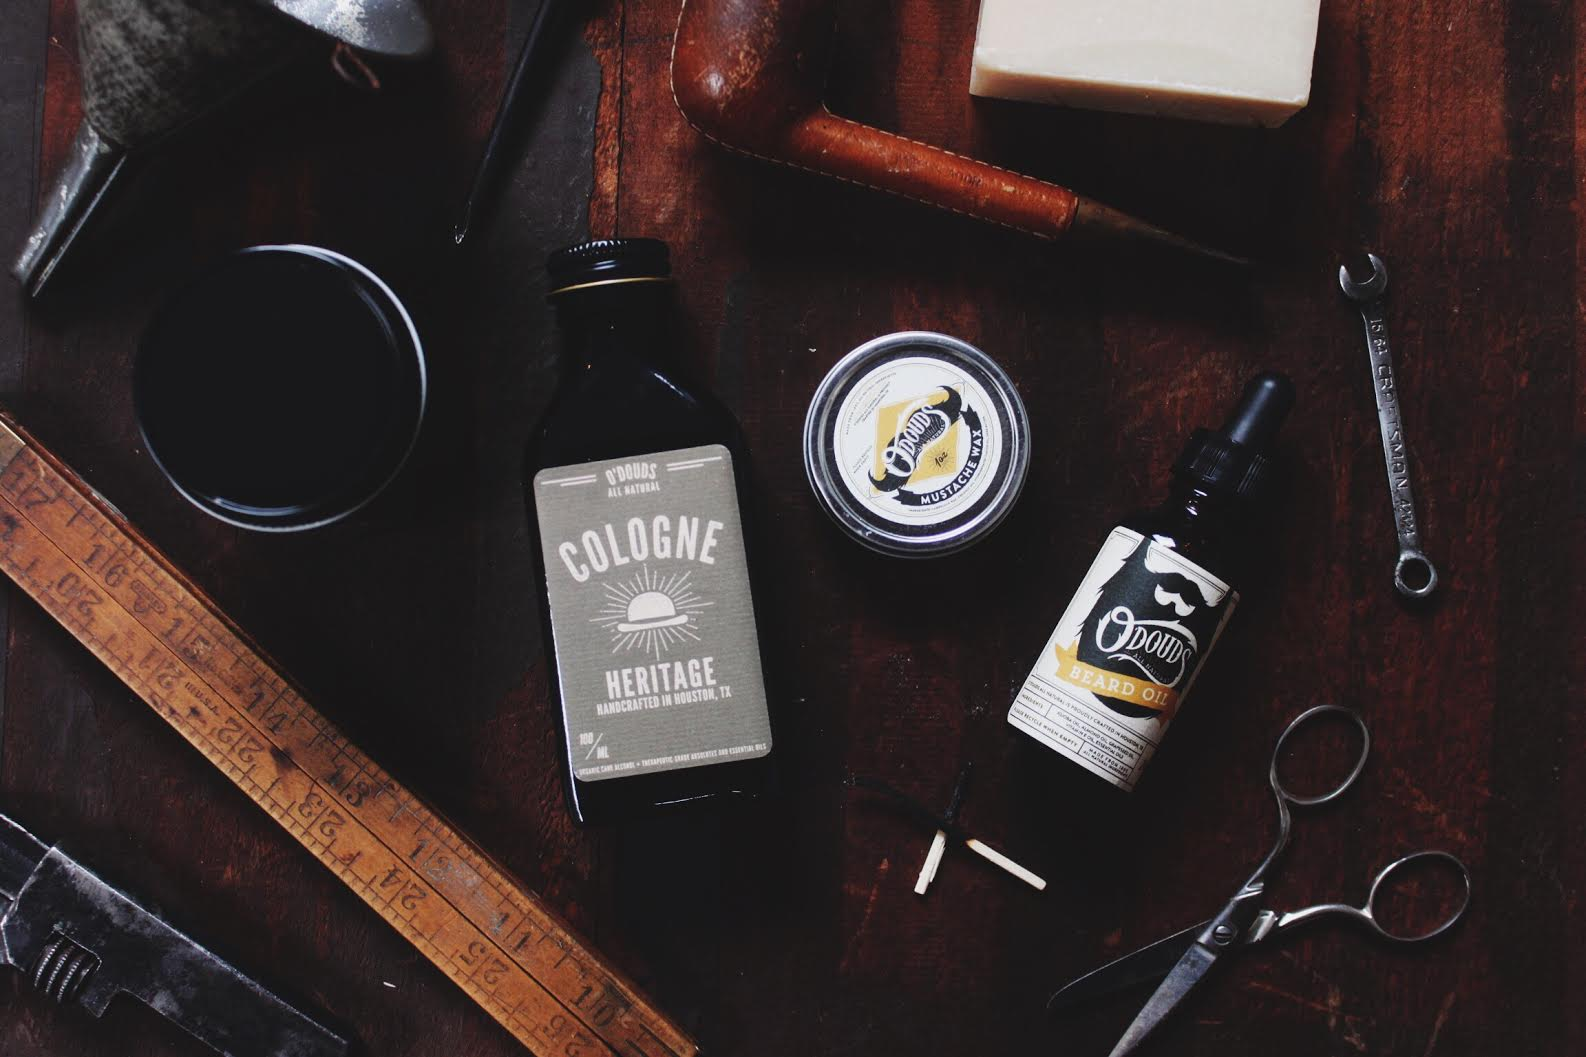 picture of O douds cologne and moustache wax